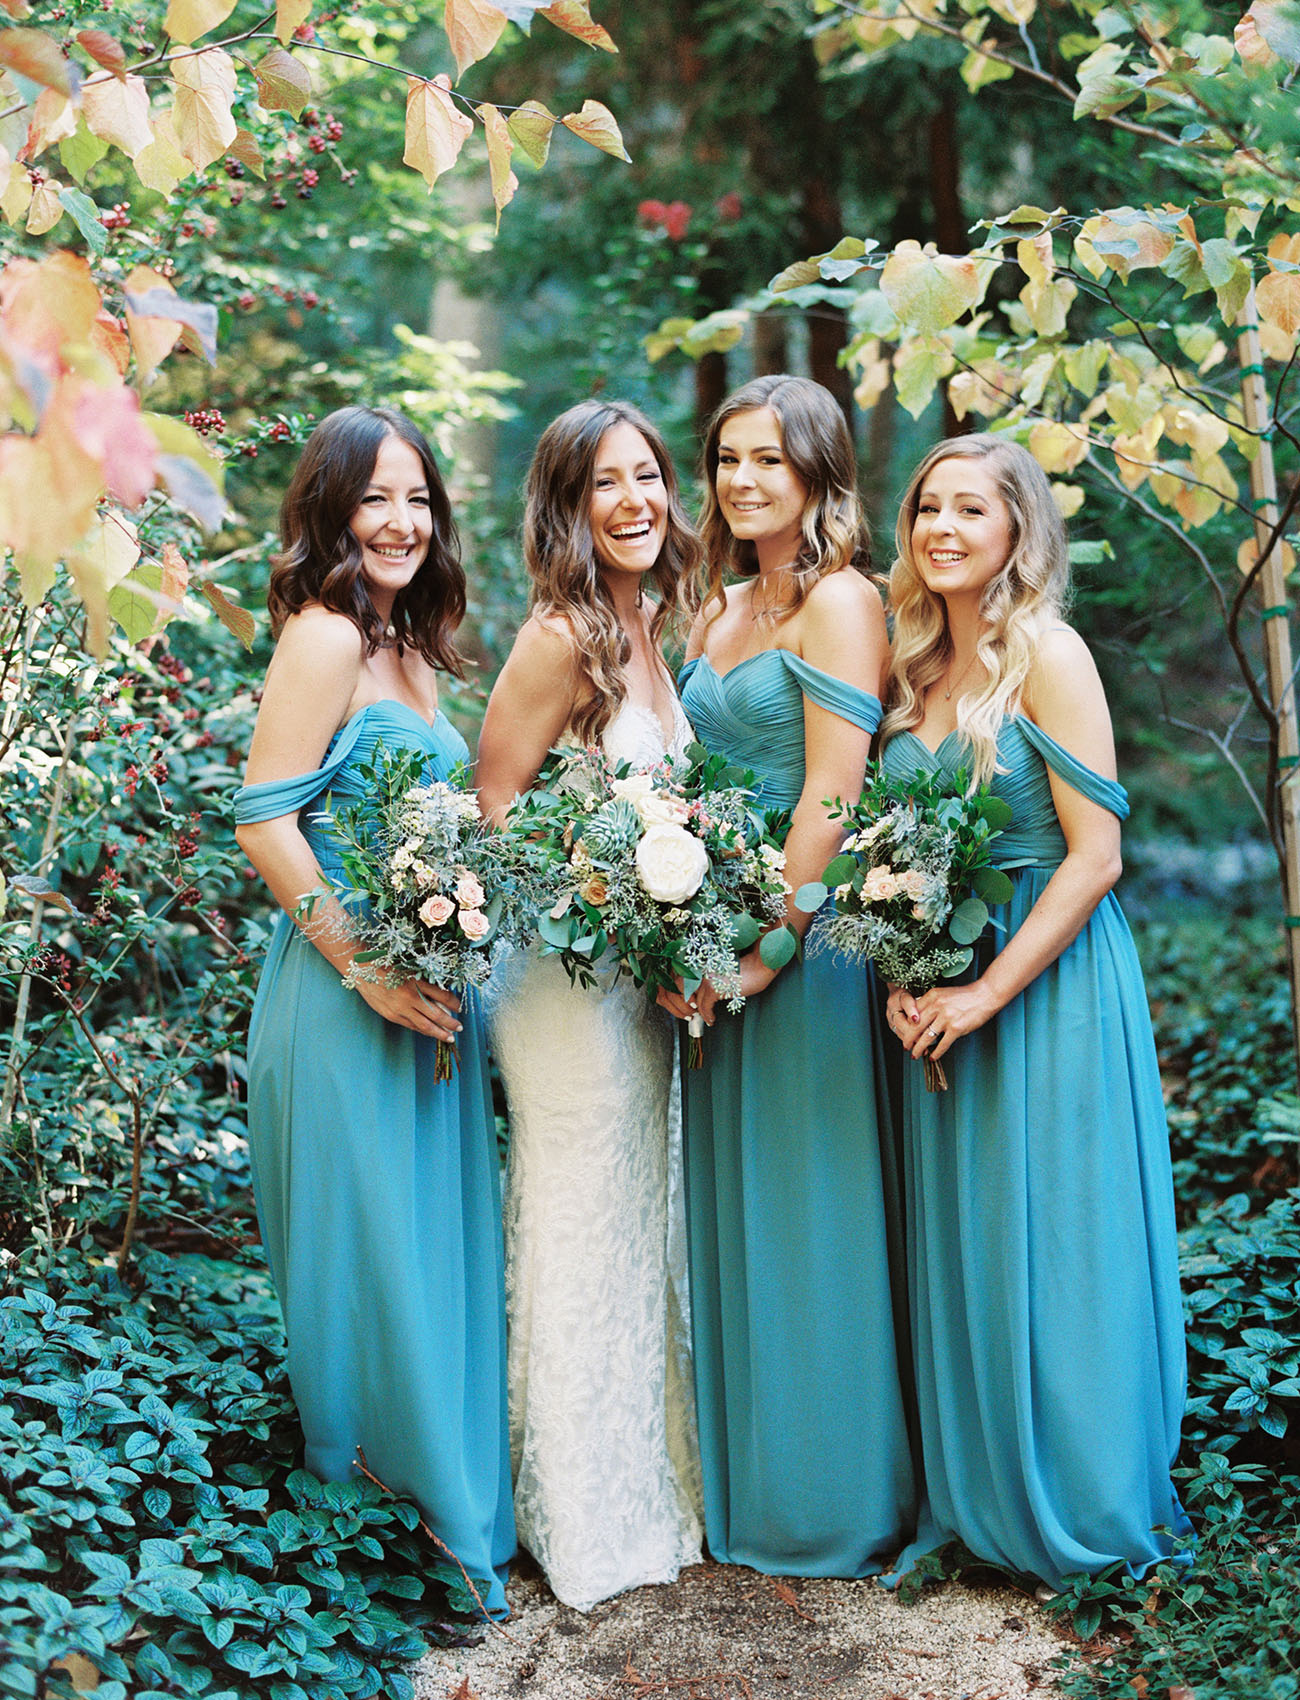 Bridesmaid Dresses For Wedding